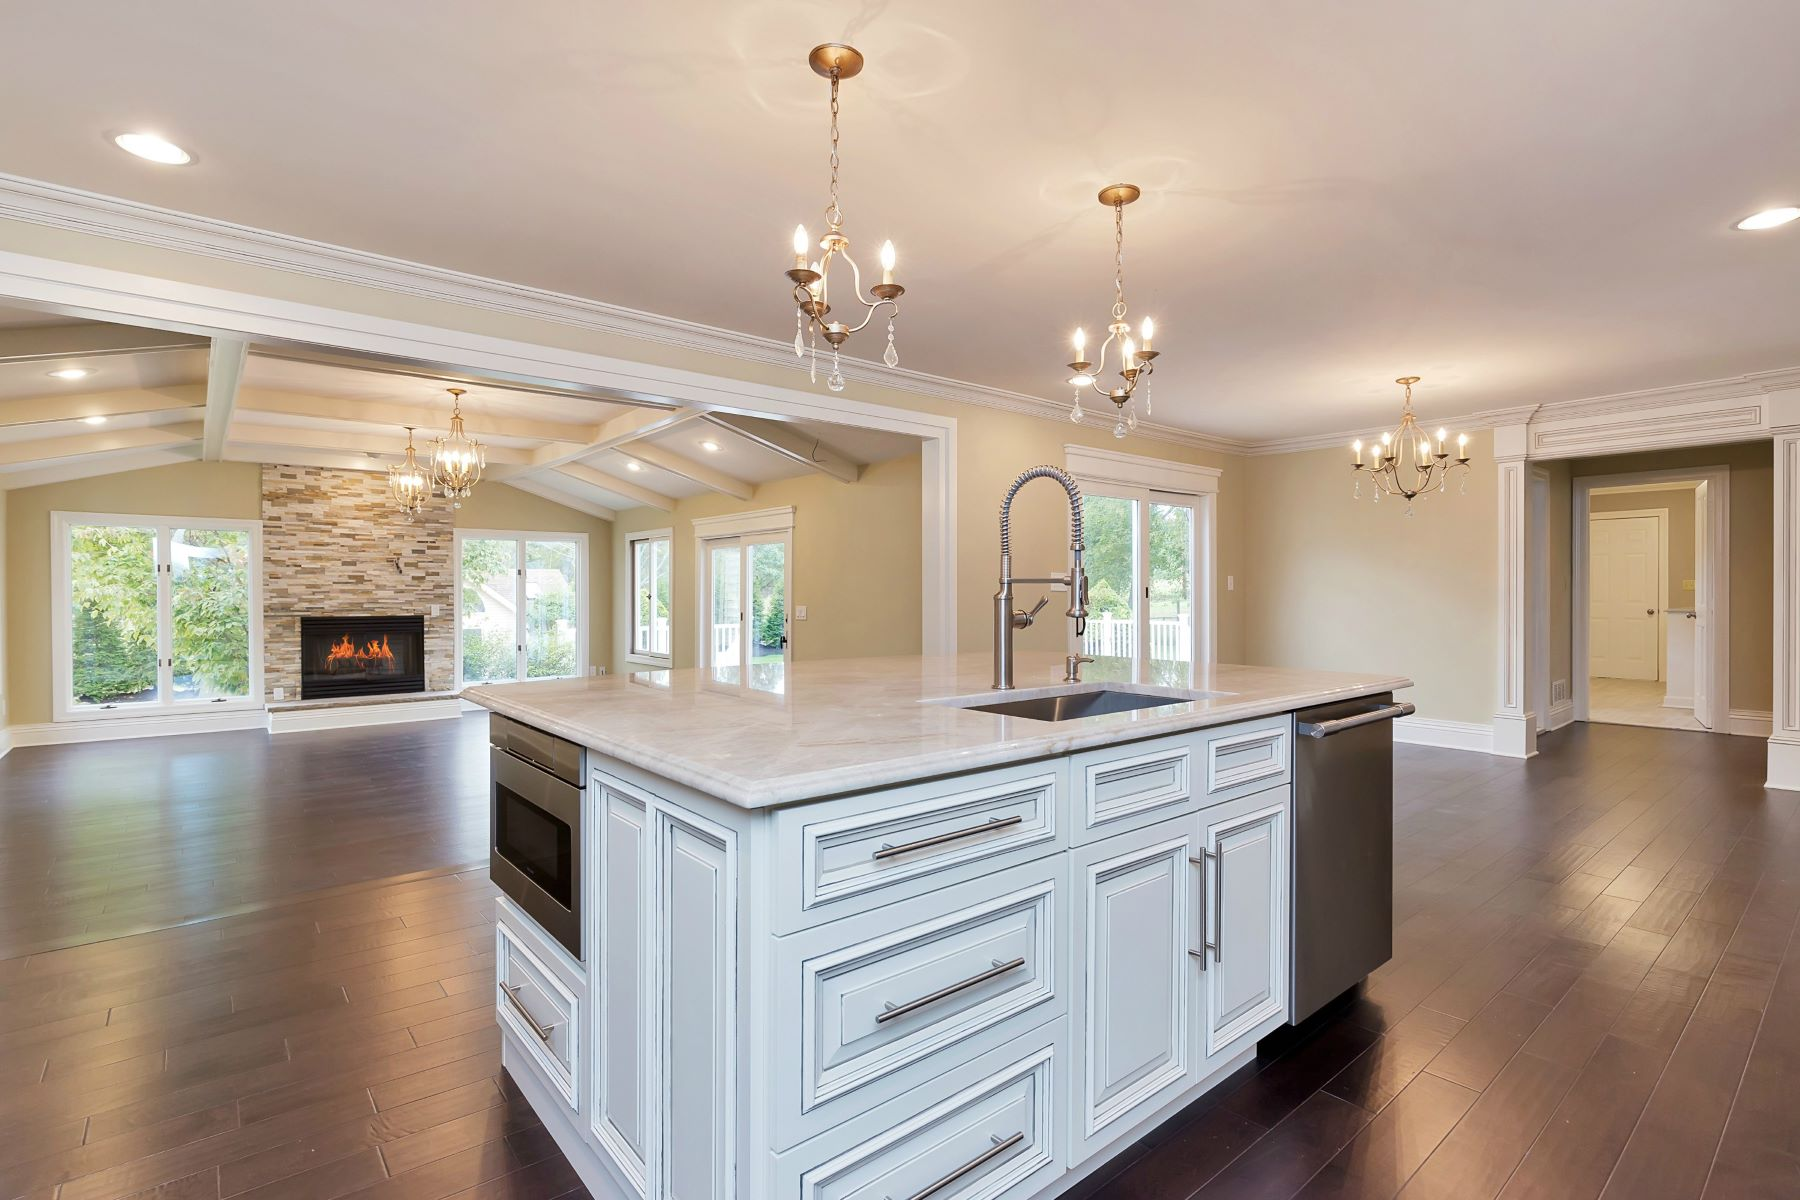 Single Family Home for Sale at Elegant Custom Colonial 12 Meadowview Drive Colts Neck, New Jersey, 07722 United States